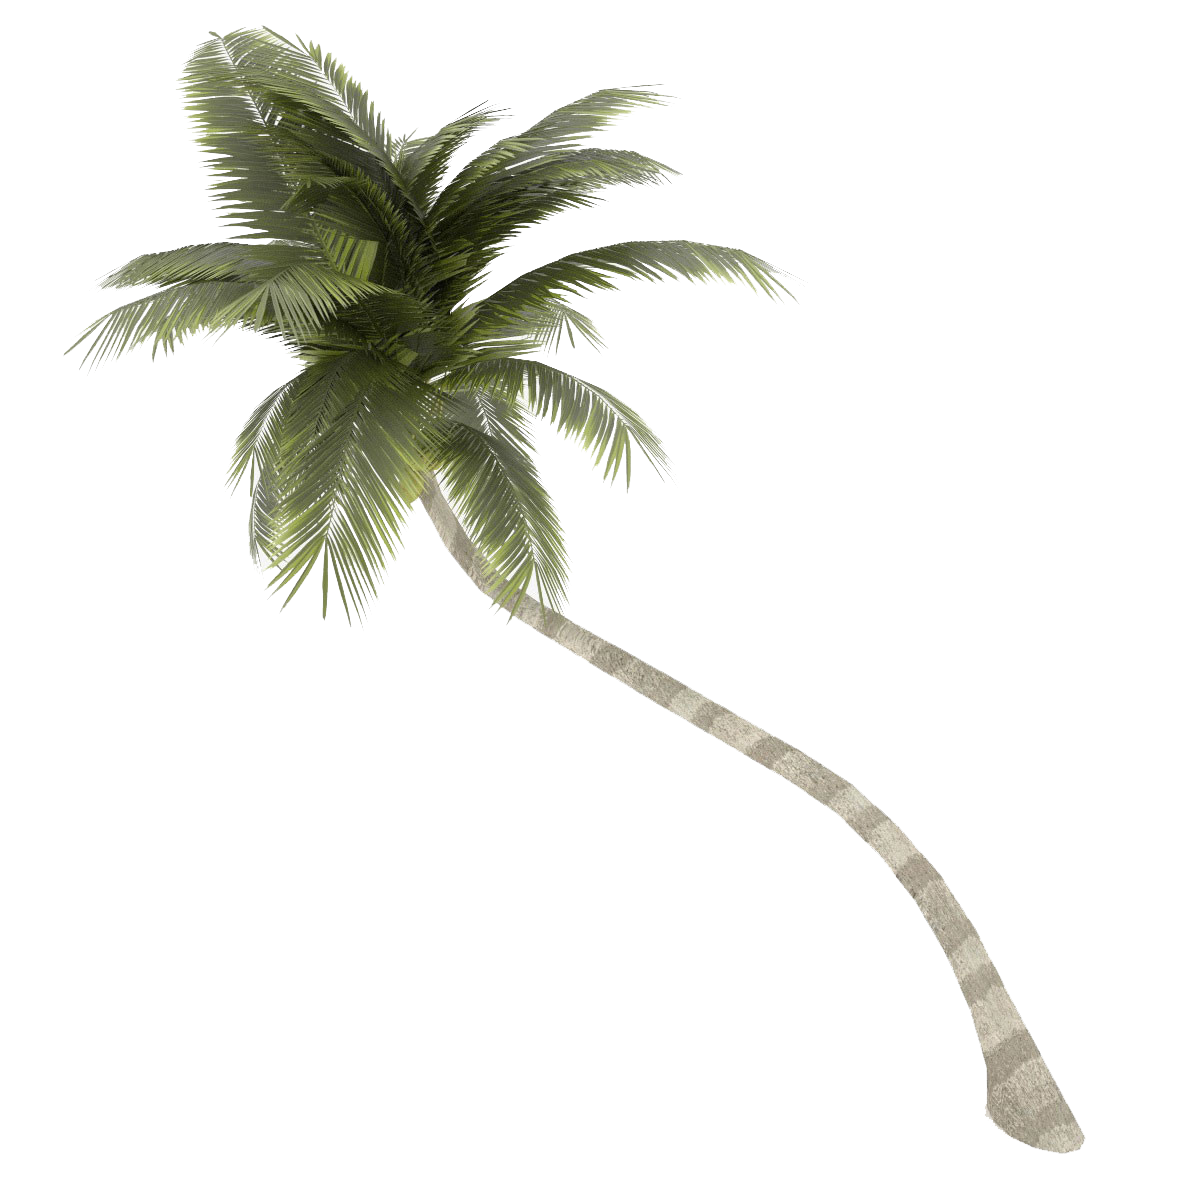 Palm tree background png. Coconut images transparent free